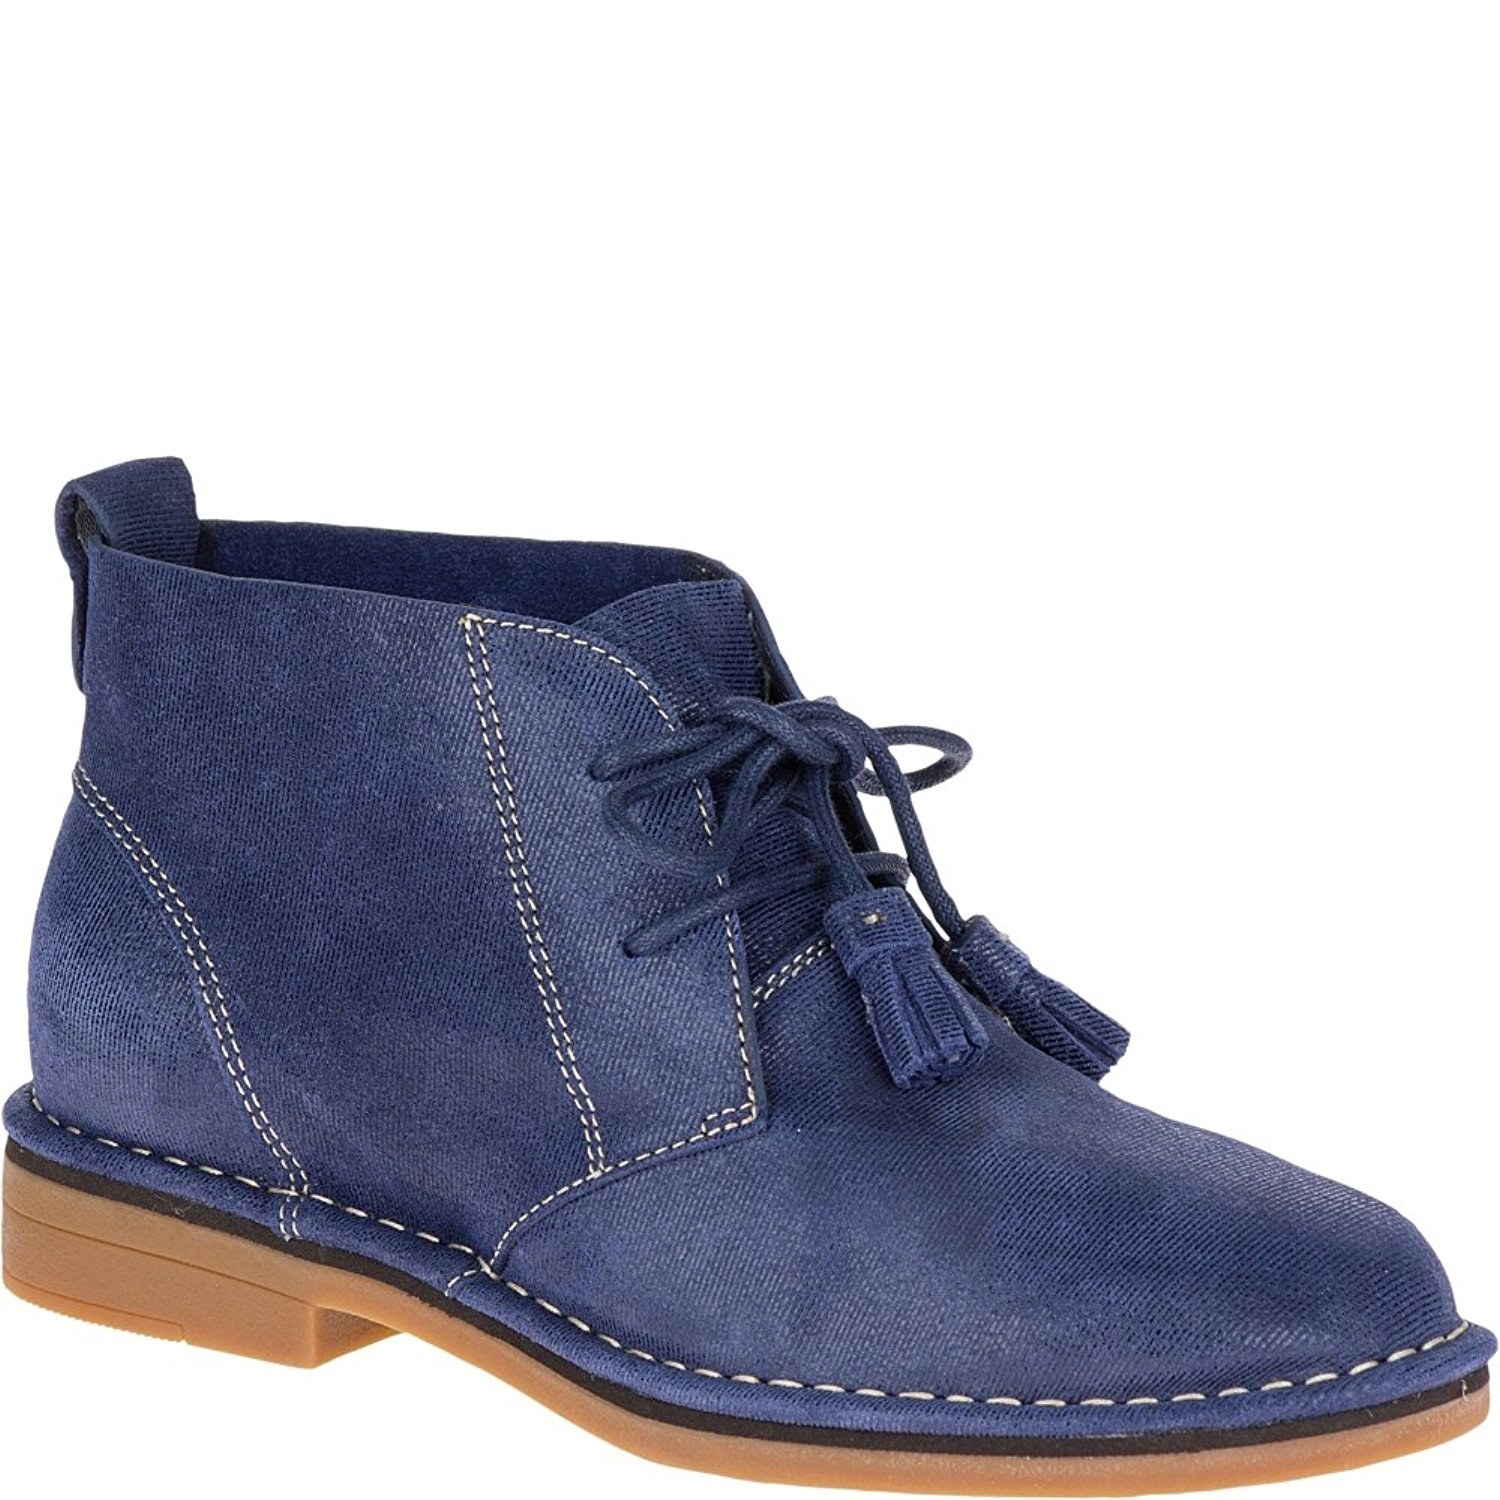 Hush Puppies Women's Cyra Catelyn Navy Shimmer Suede 8 M US